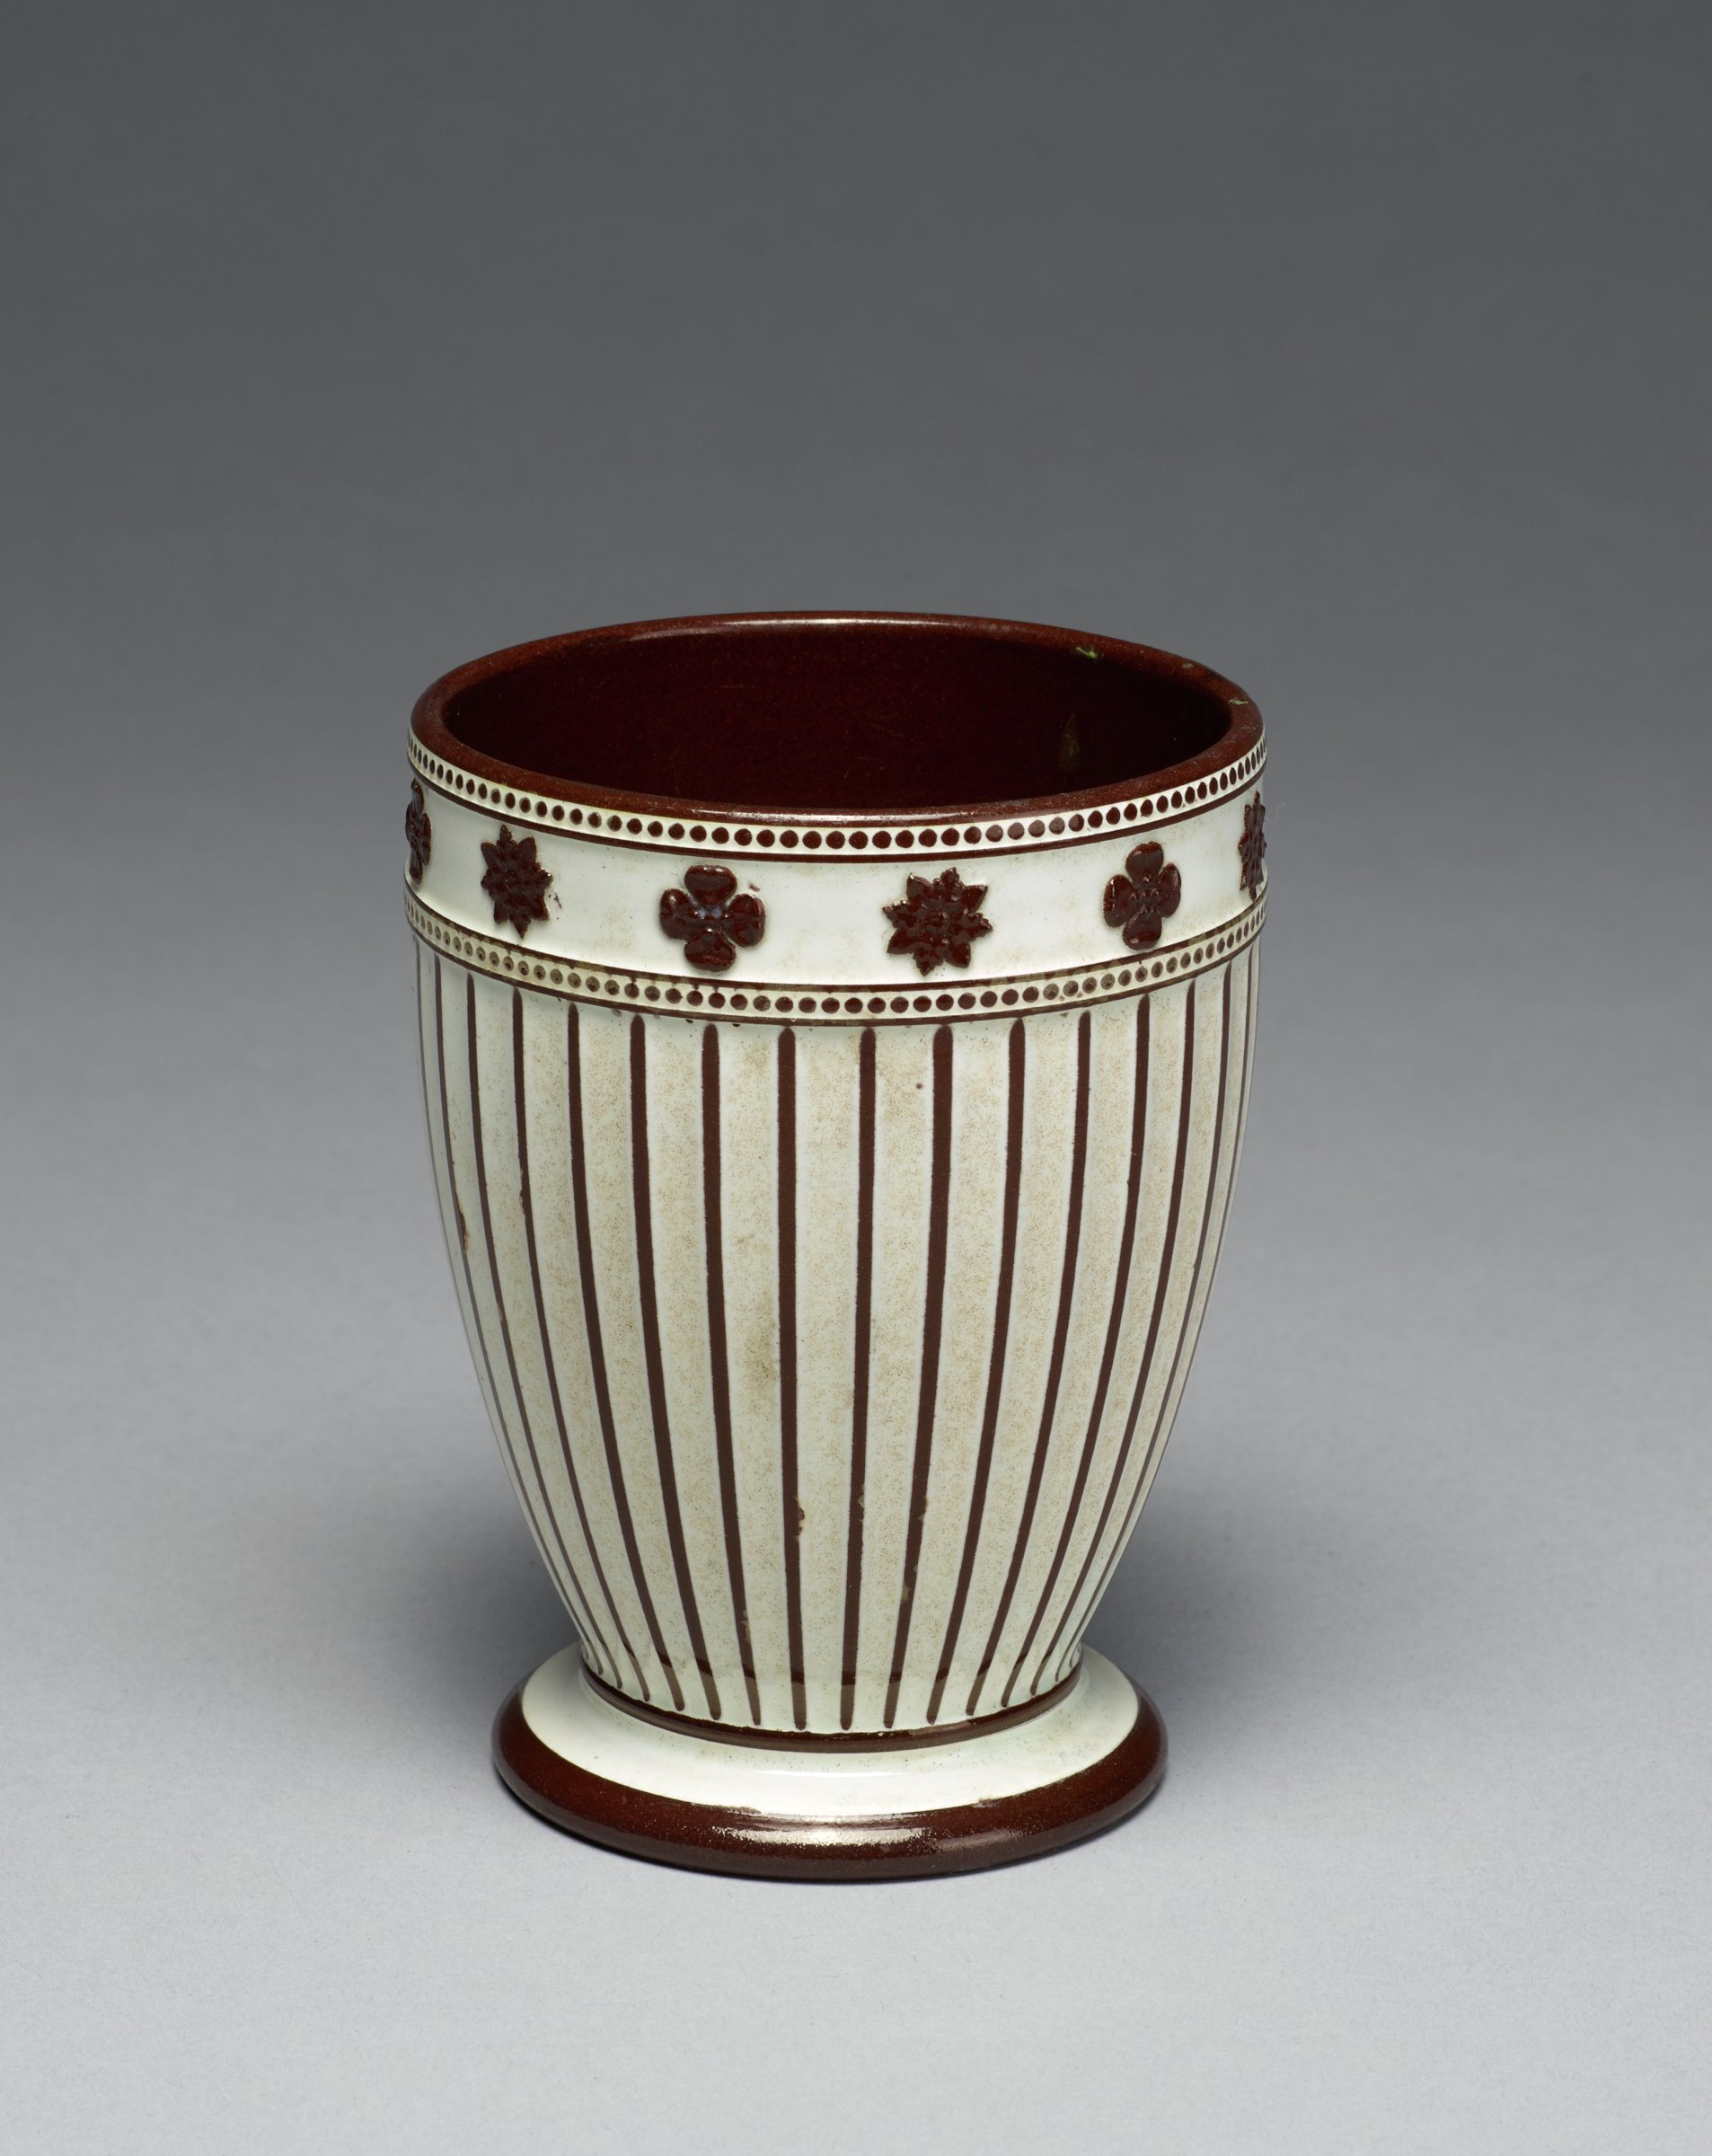 Small cup-shaped vase with foot, of white stoneware covered with a brown glaze, the main body fluted and decorated with a series of cream and brown stripes, below the lip a band of cream with applied brown star-shaped and clover motifs between two rows of beading, the interior glazed brown.